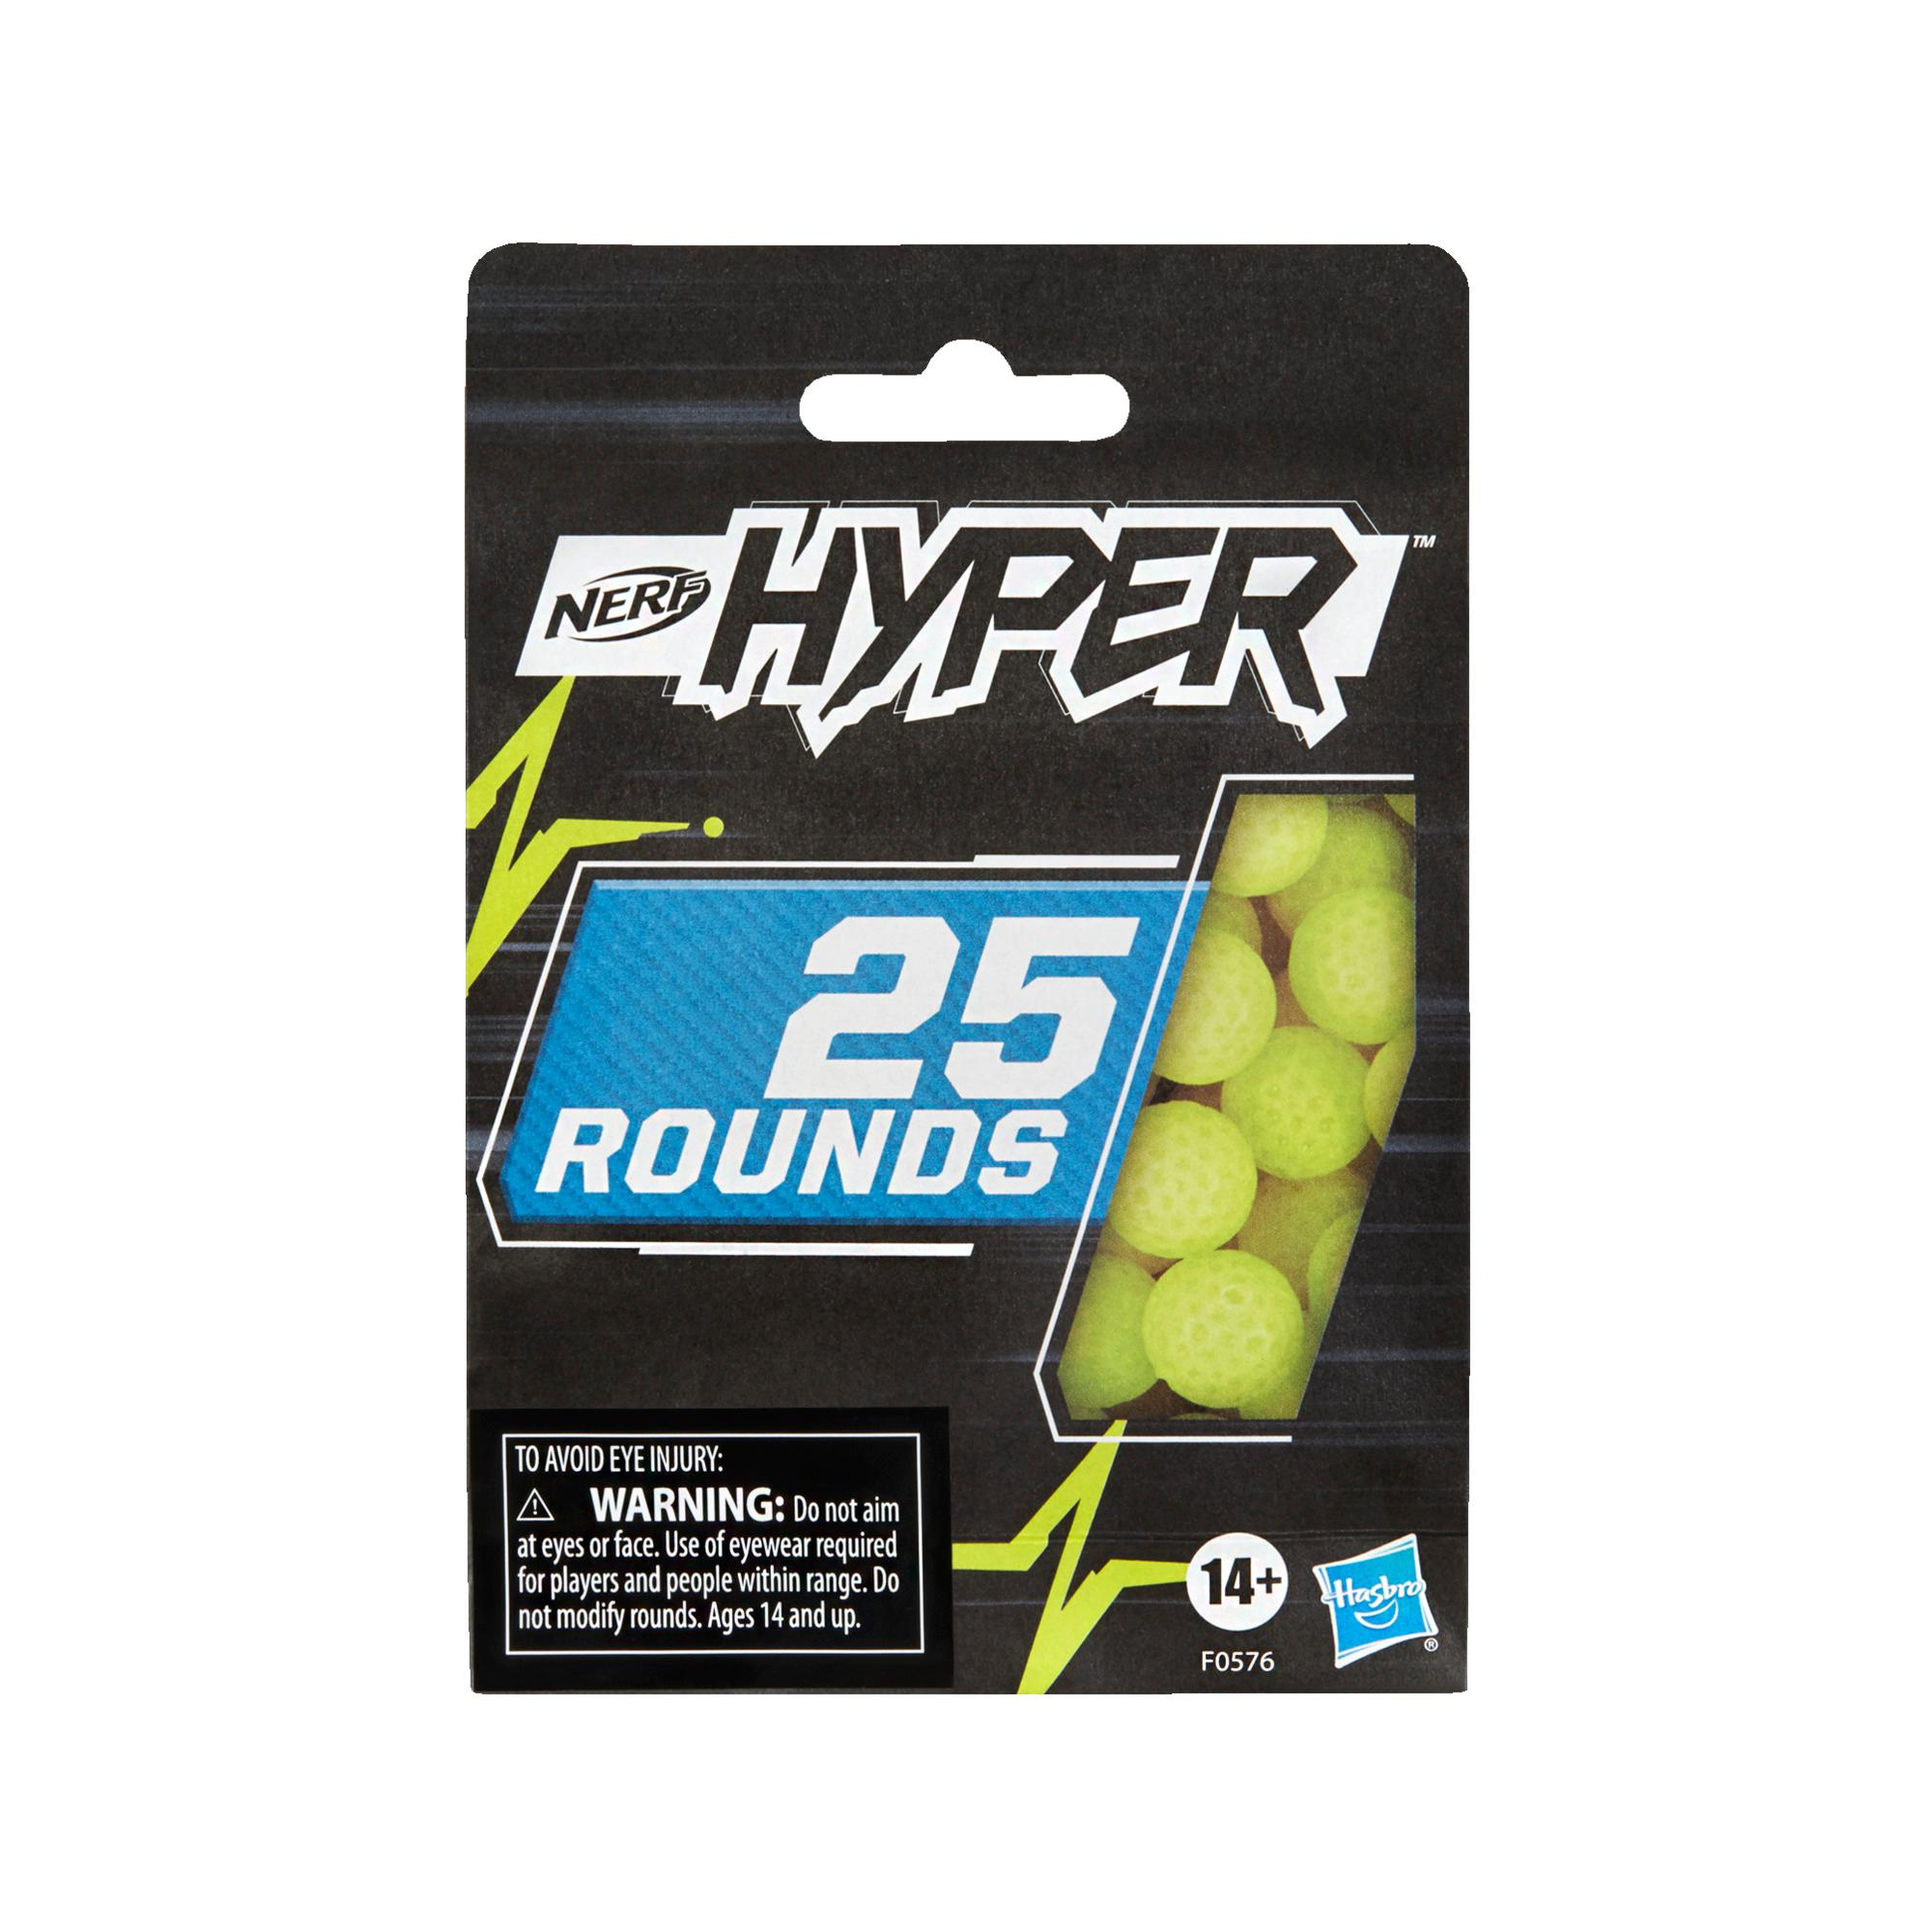 Nerf Hyper 25-Round Boost Refill -- Includes Pack of 25 Official Nerf Hyper Rounds -- For Use with Nerf Hyper Blasters